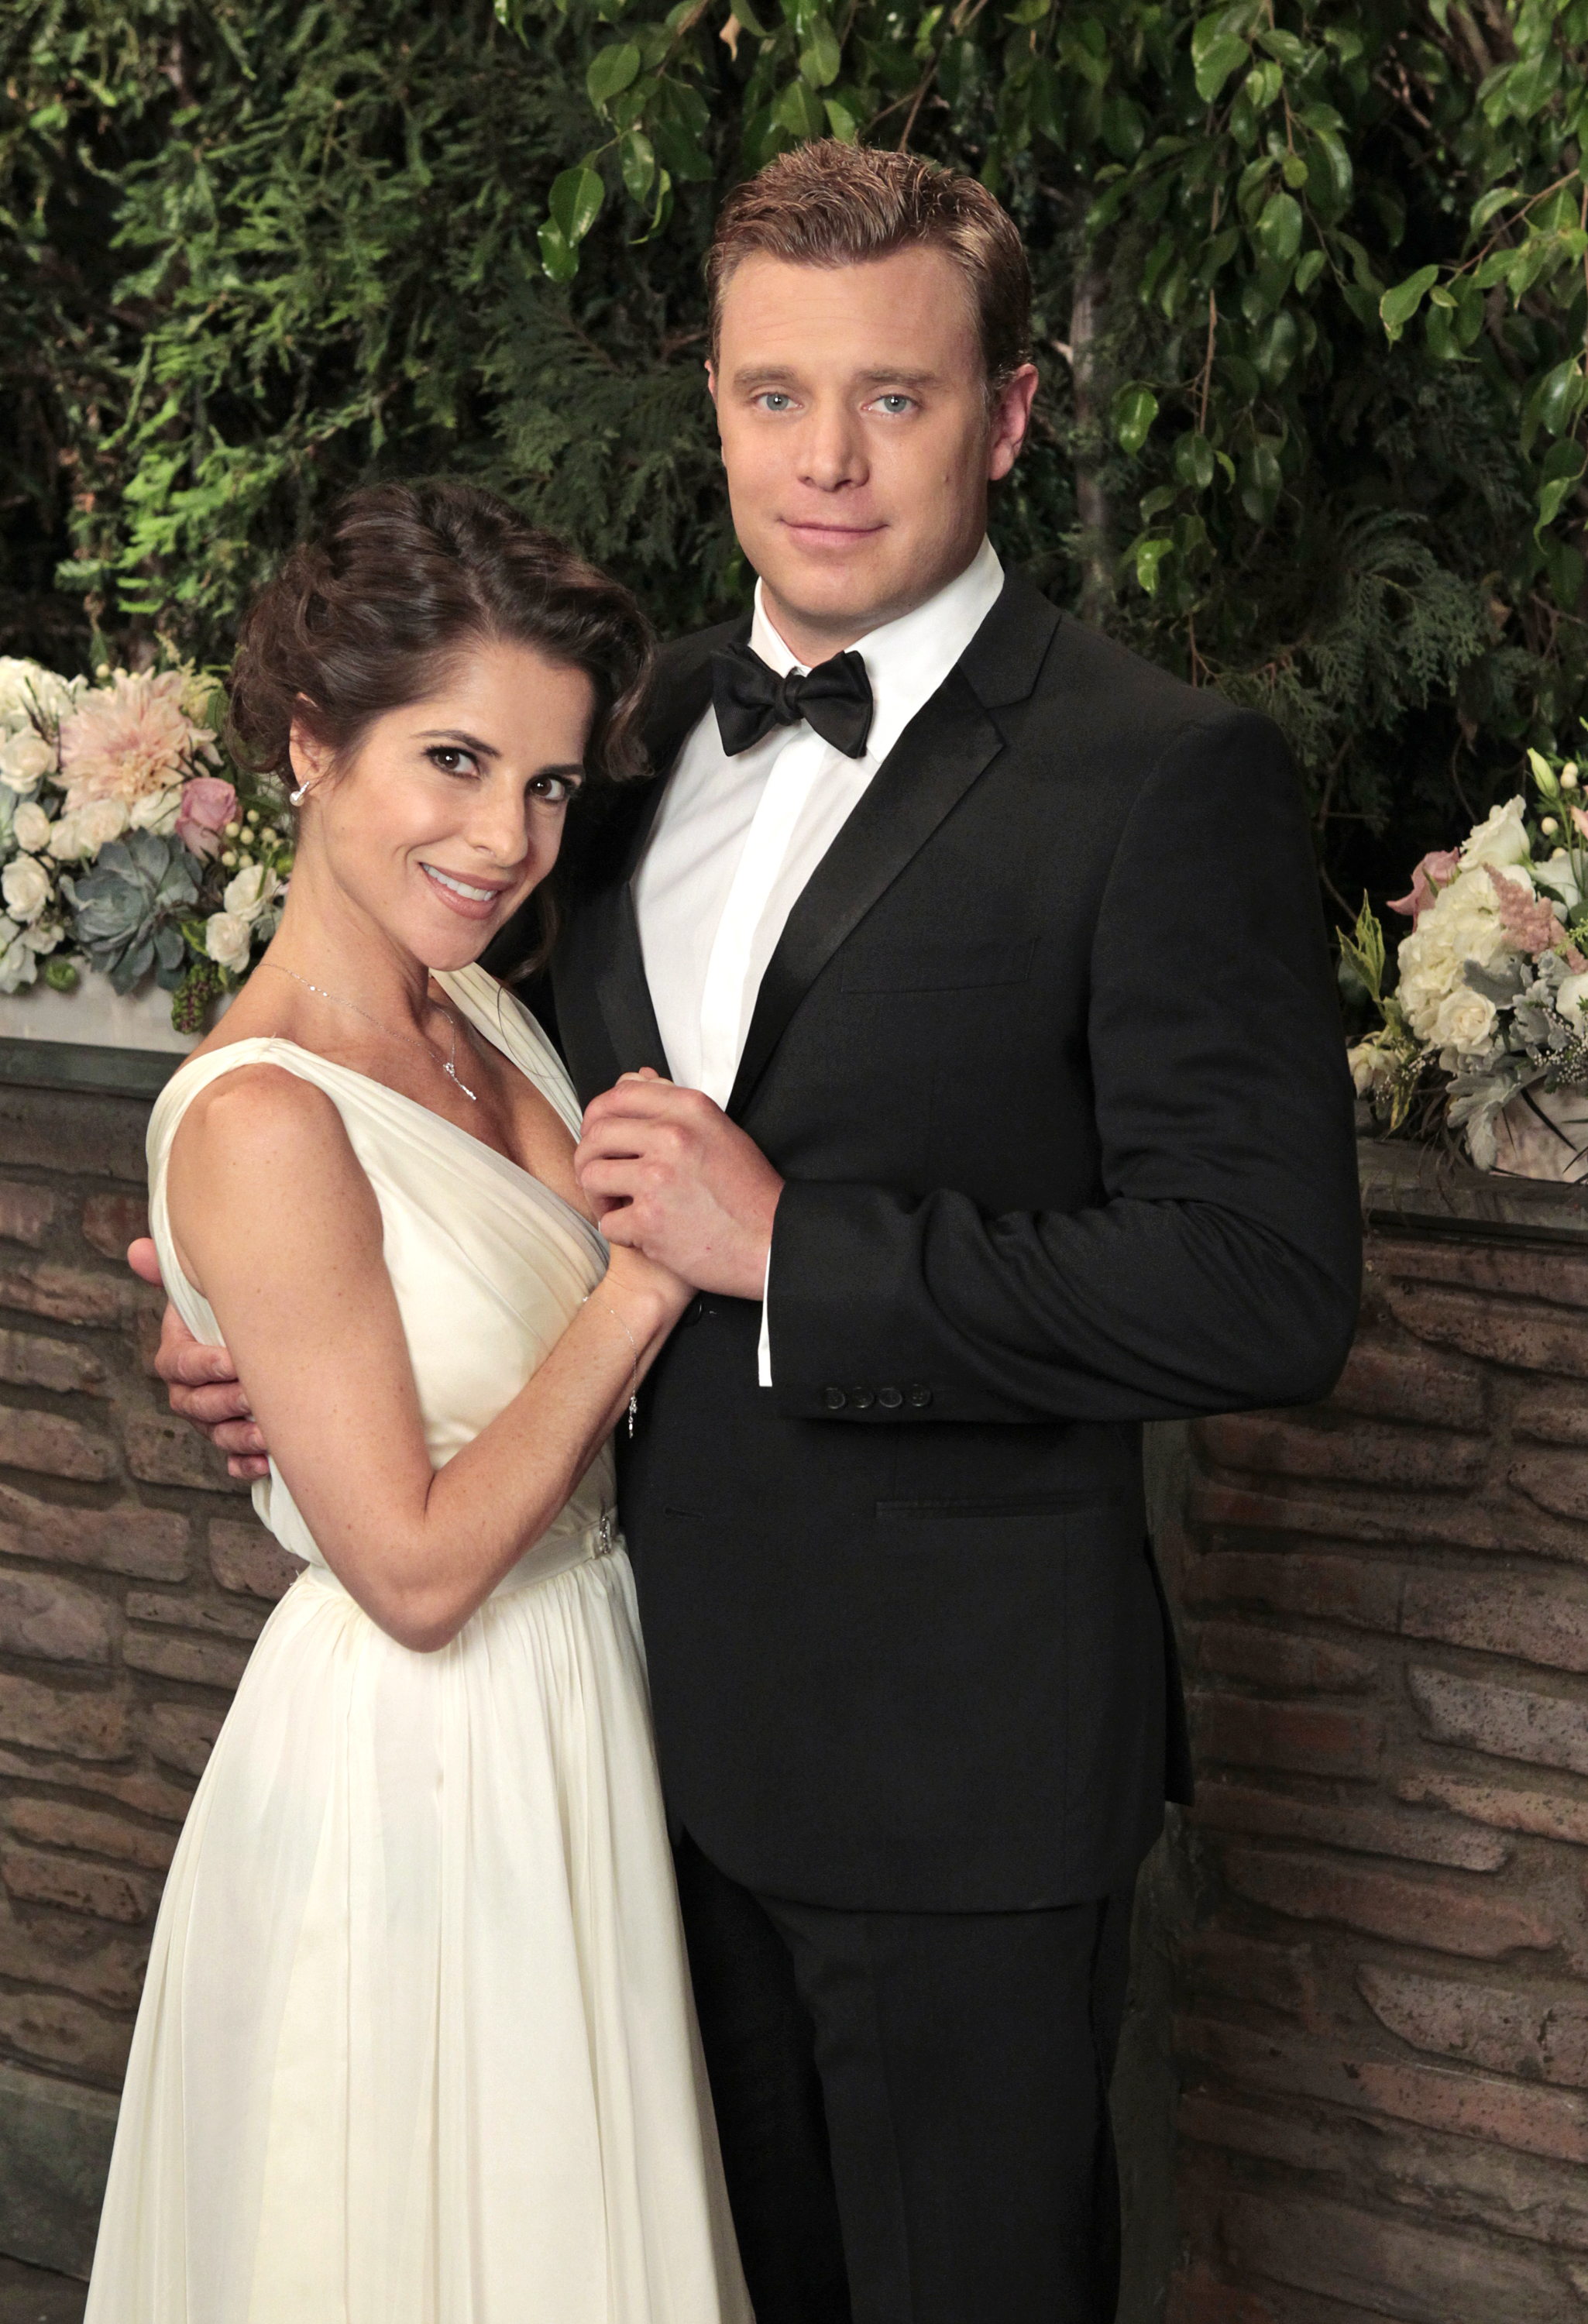 Exclusive Sneak Peek Gh S Jason And Sam Tie The Knot